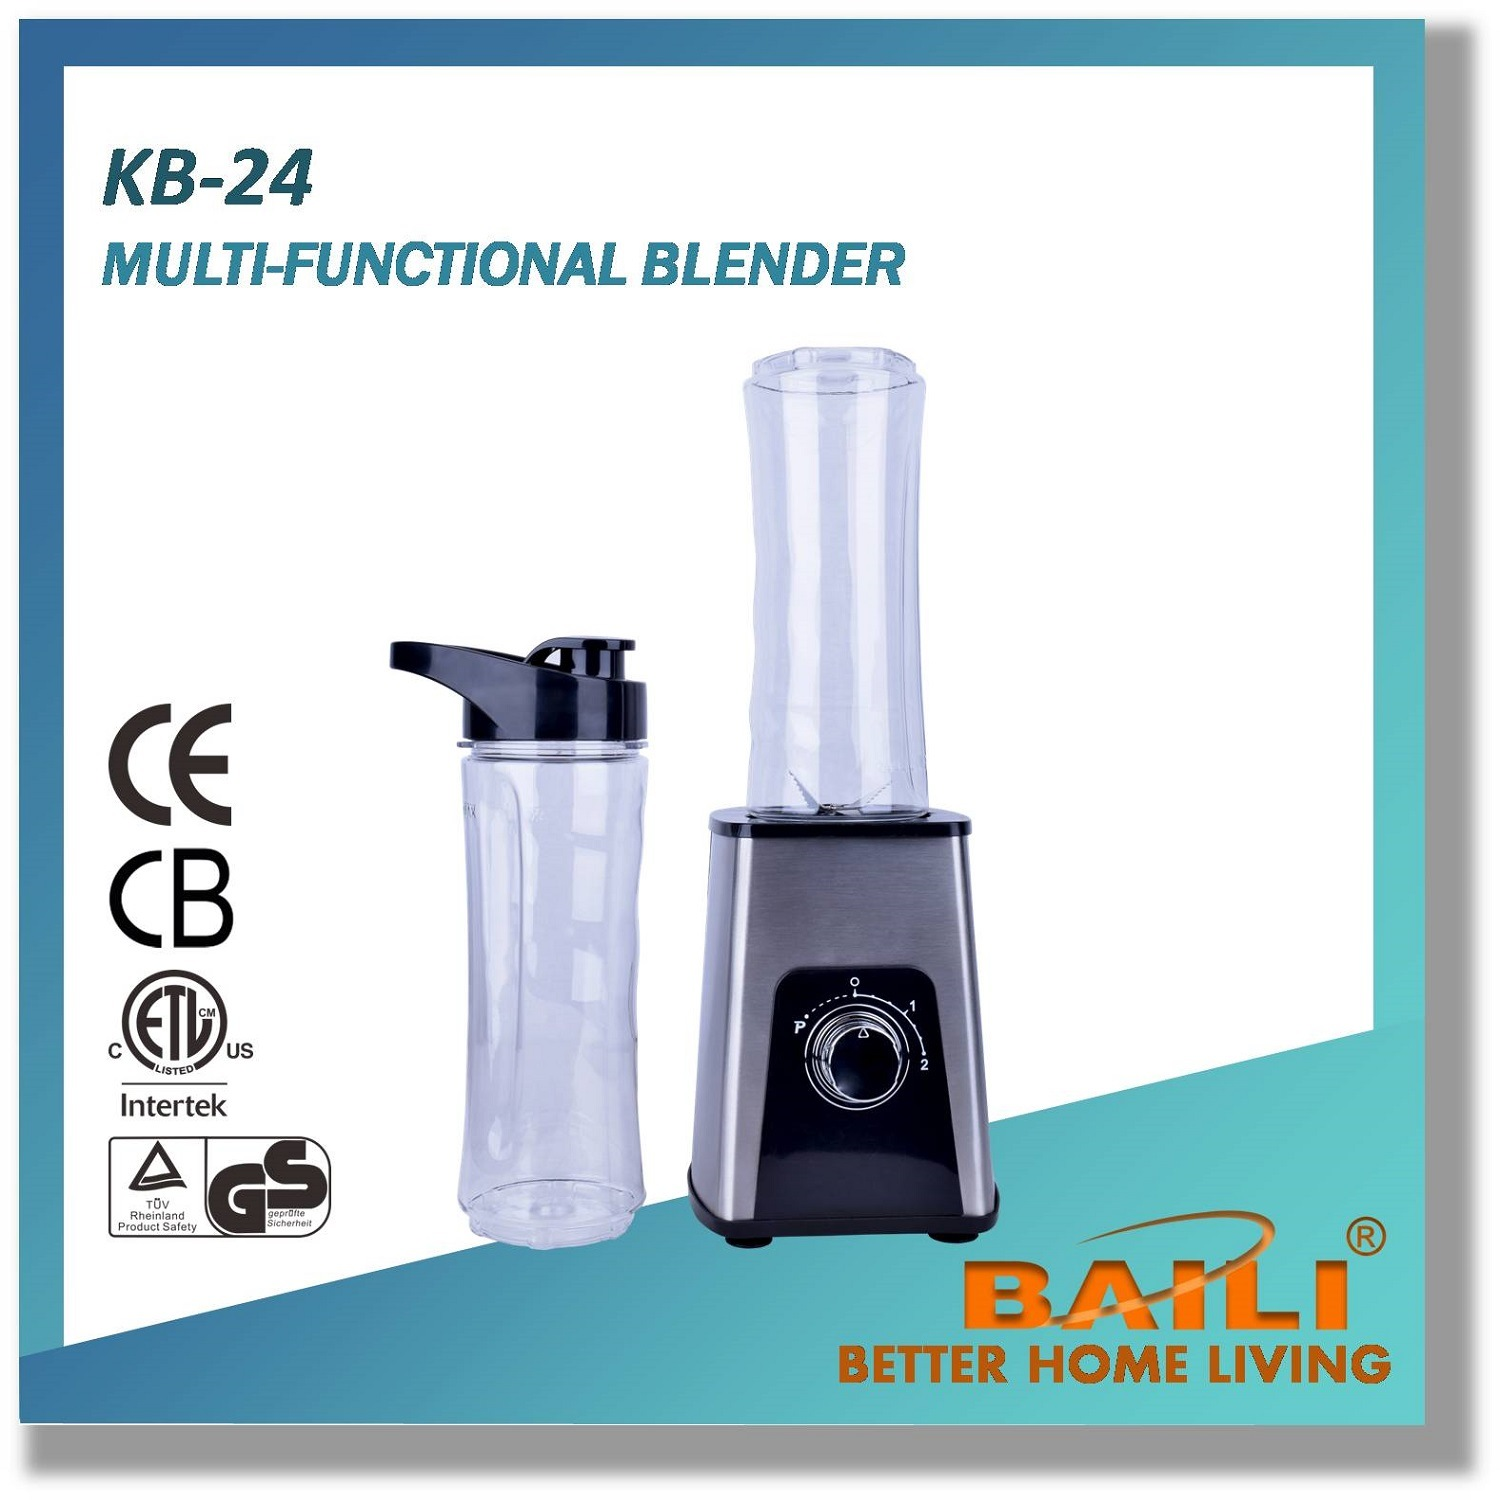 Multifunctional Blender with Two Speeds